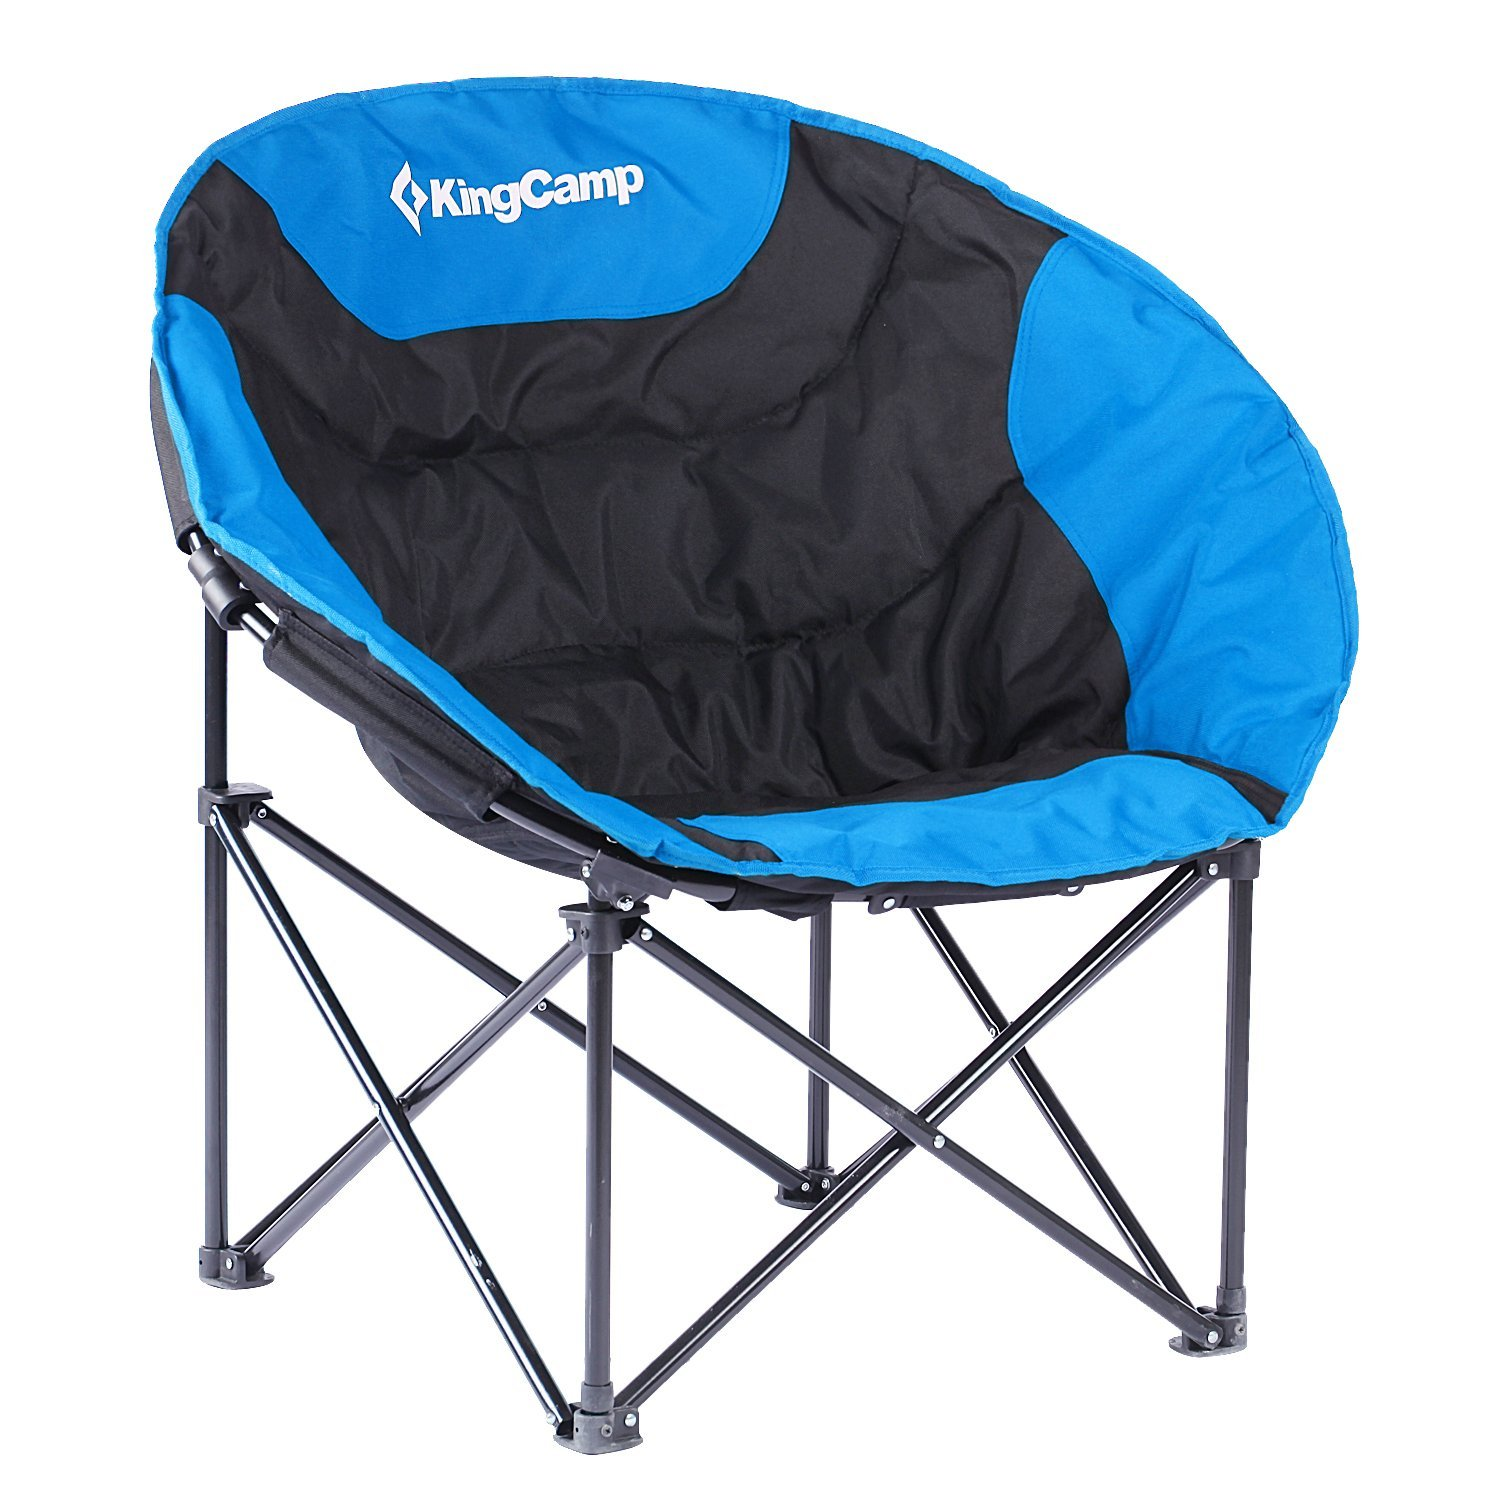 padded camping chair office waiting room chairs cheap kingcamp moon saucer steel frame folding round portable stable with carry bag walmart com